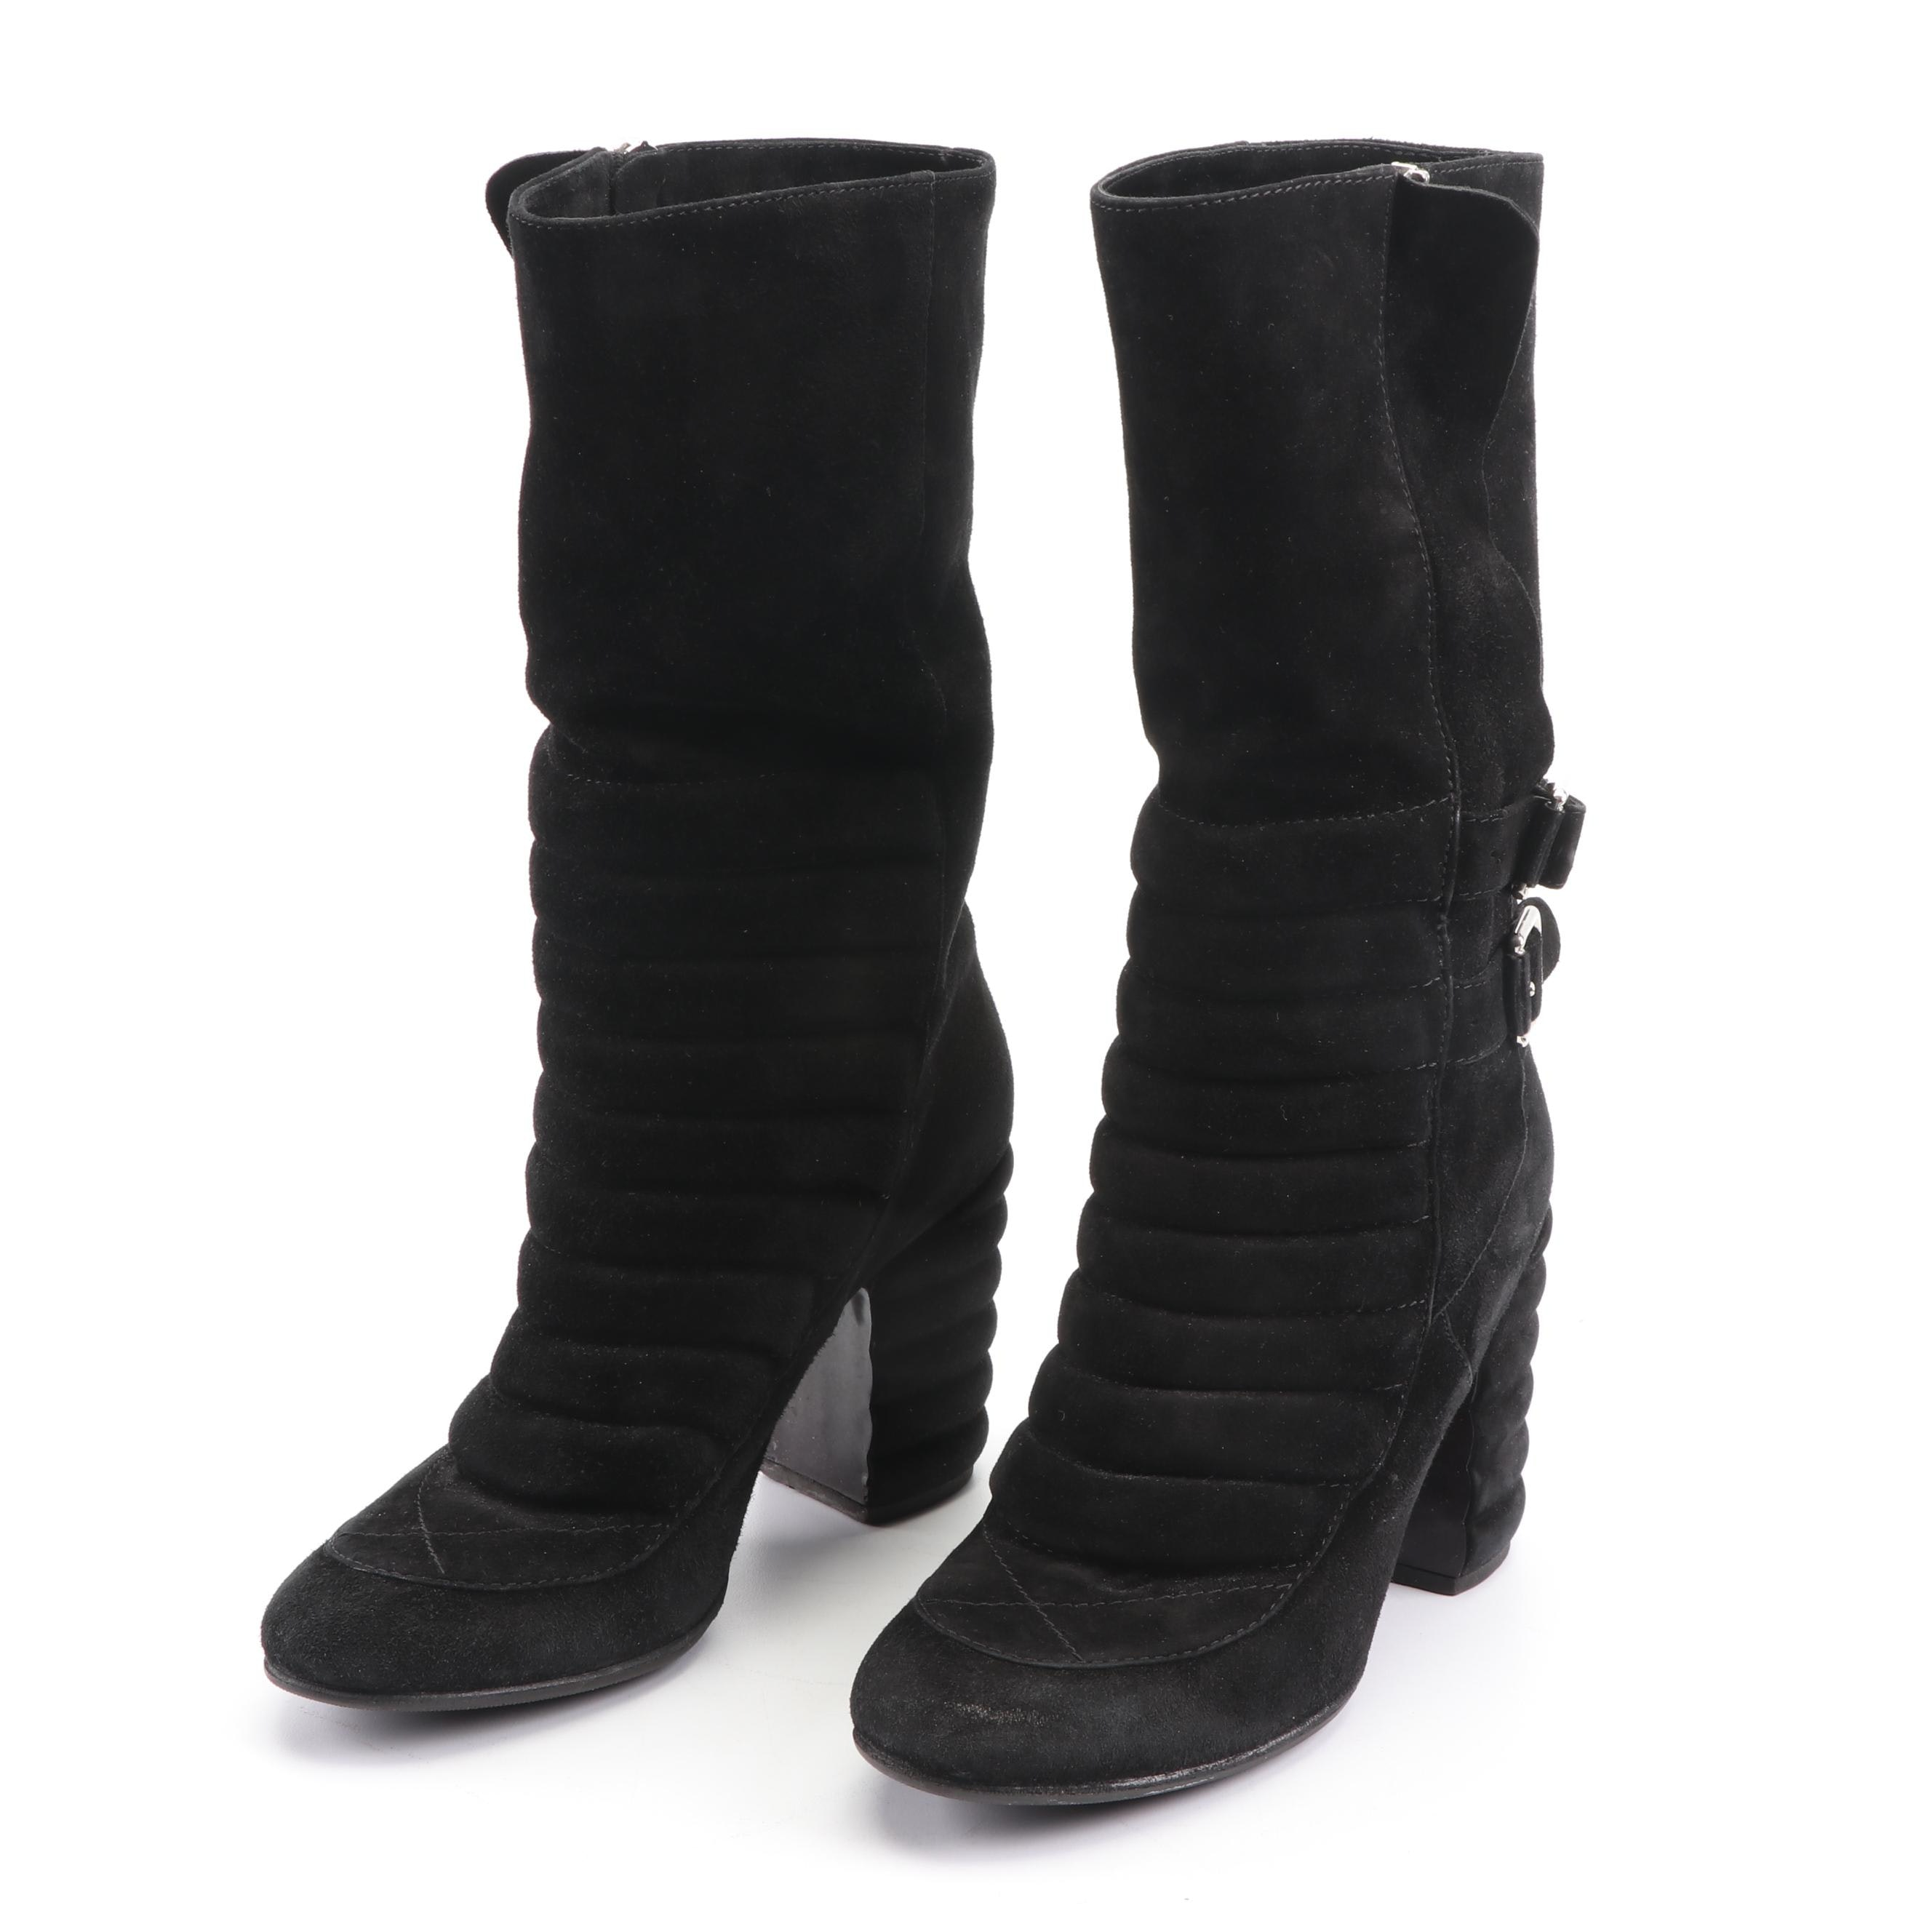 Laurence Dacade Paris Quilted Black Suede Boots with Buckle Straps